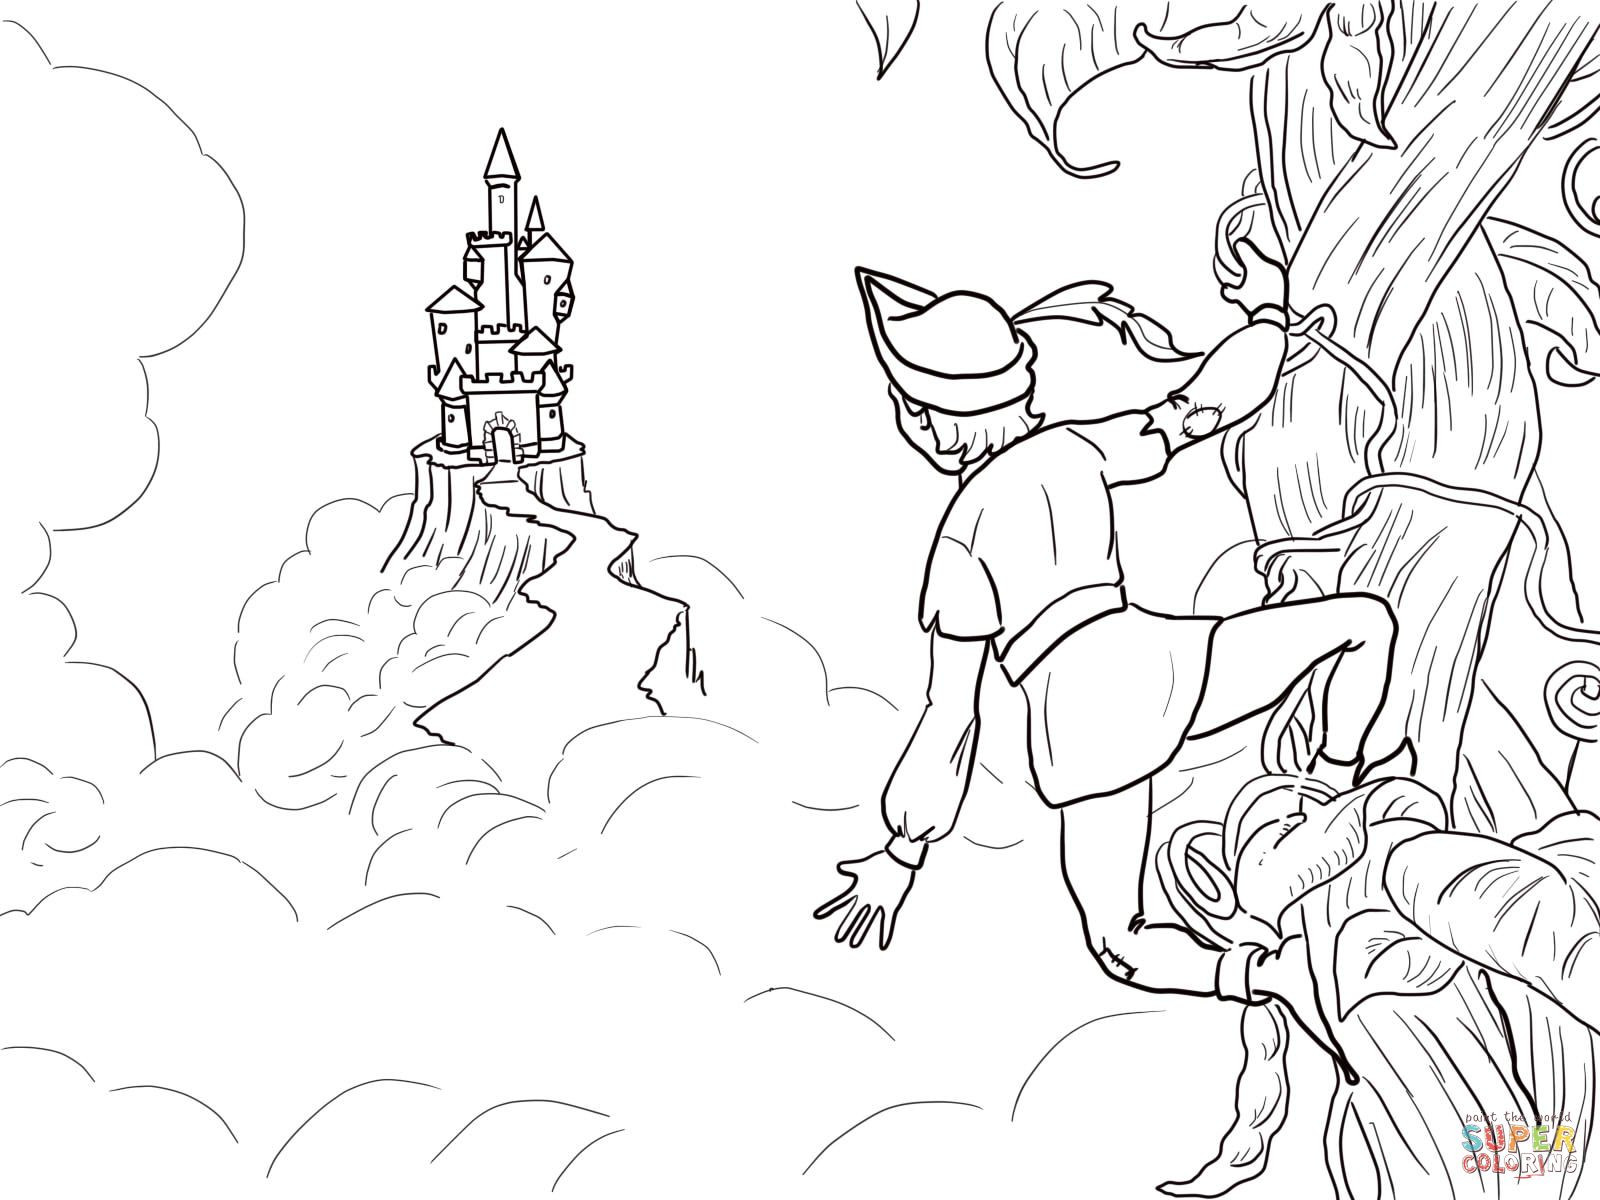 Jack and the beanstalk castle coloring page from jack and the beanstalk category select from 24661 printable crafts of cartoons nature animals